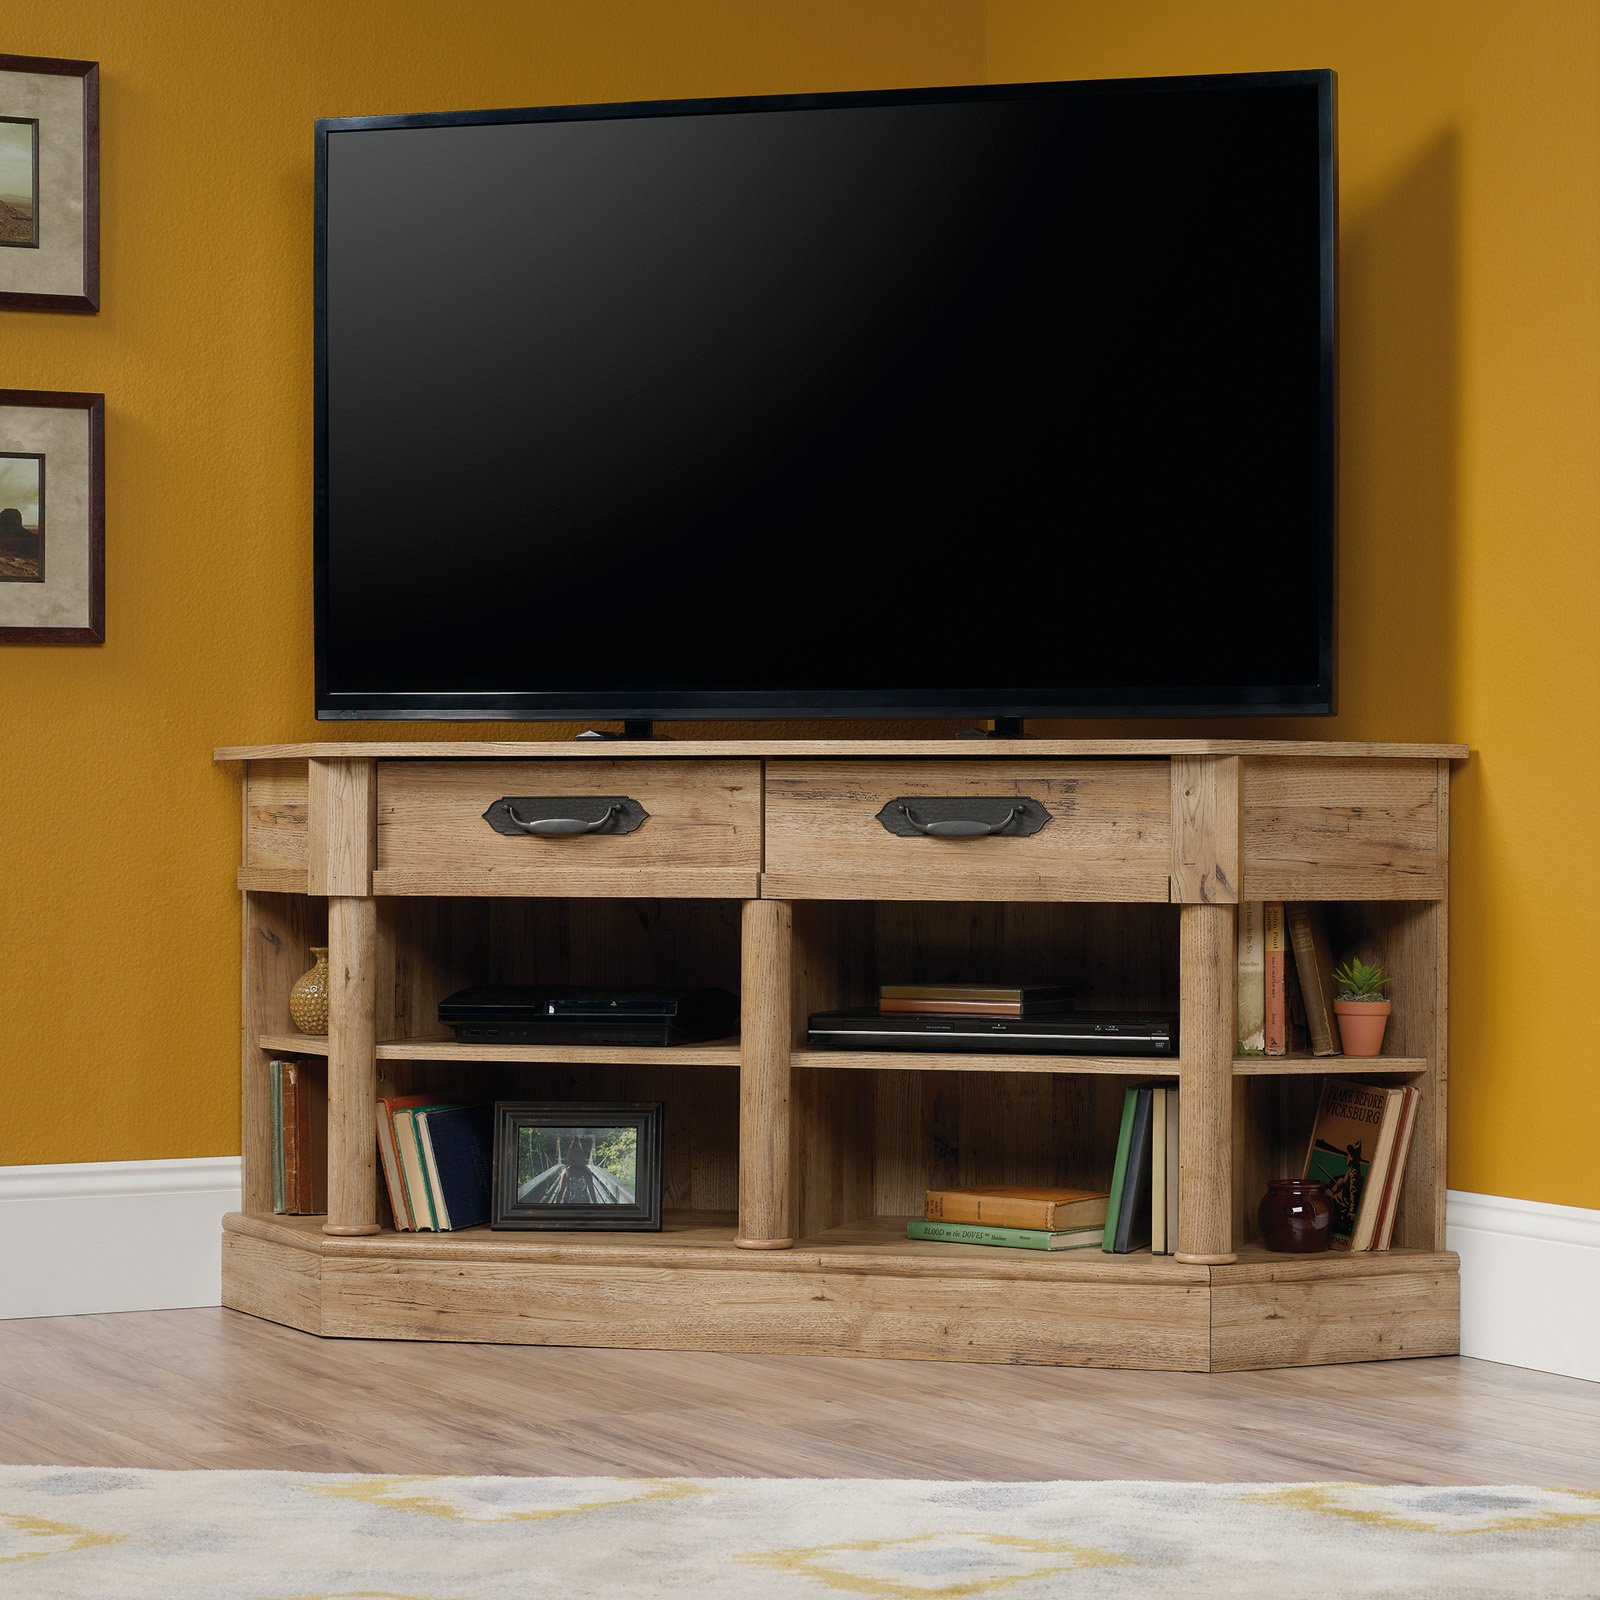 "Sauder Viabella Corner Entertainment Credenza for TVs up to 60"", Antigua Chestnut Finish"